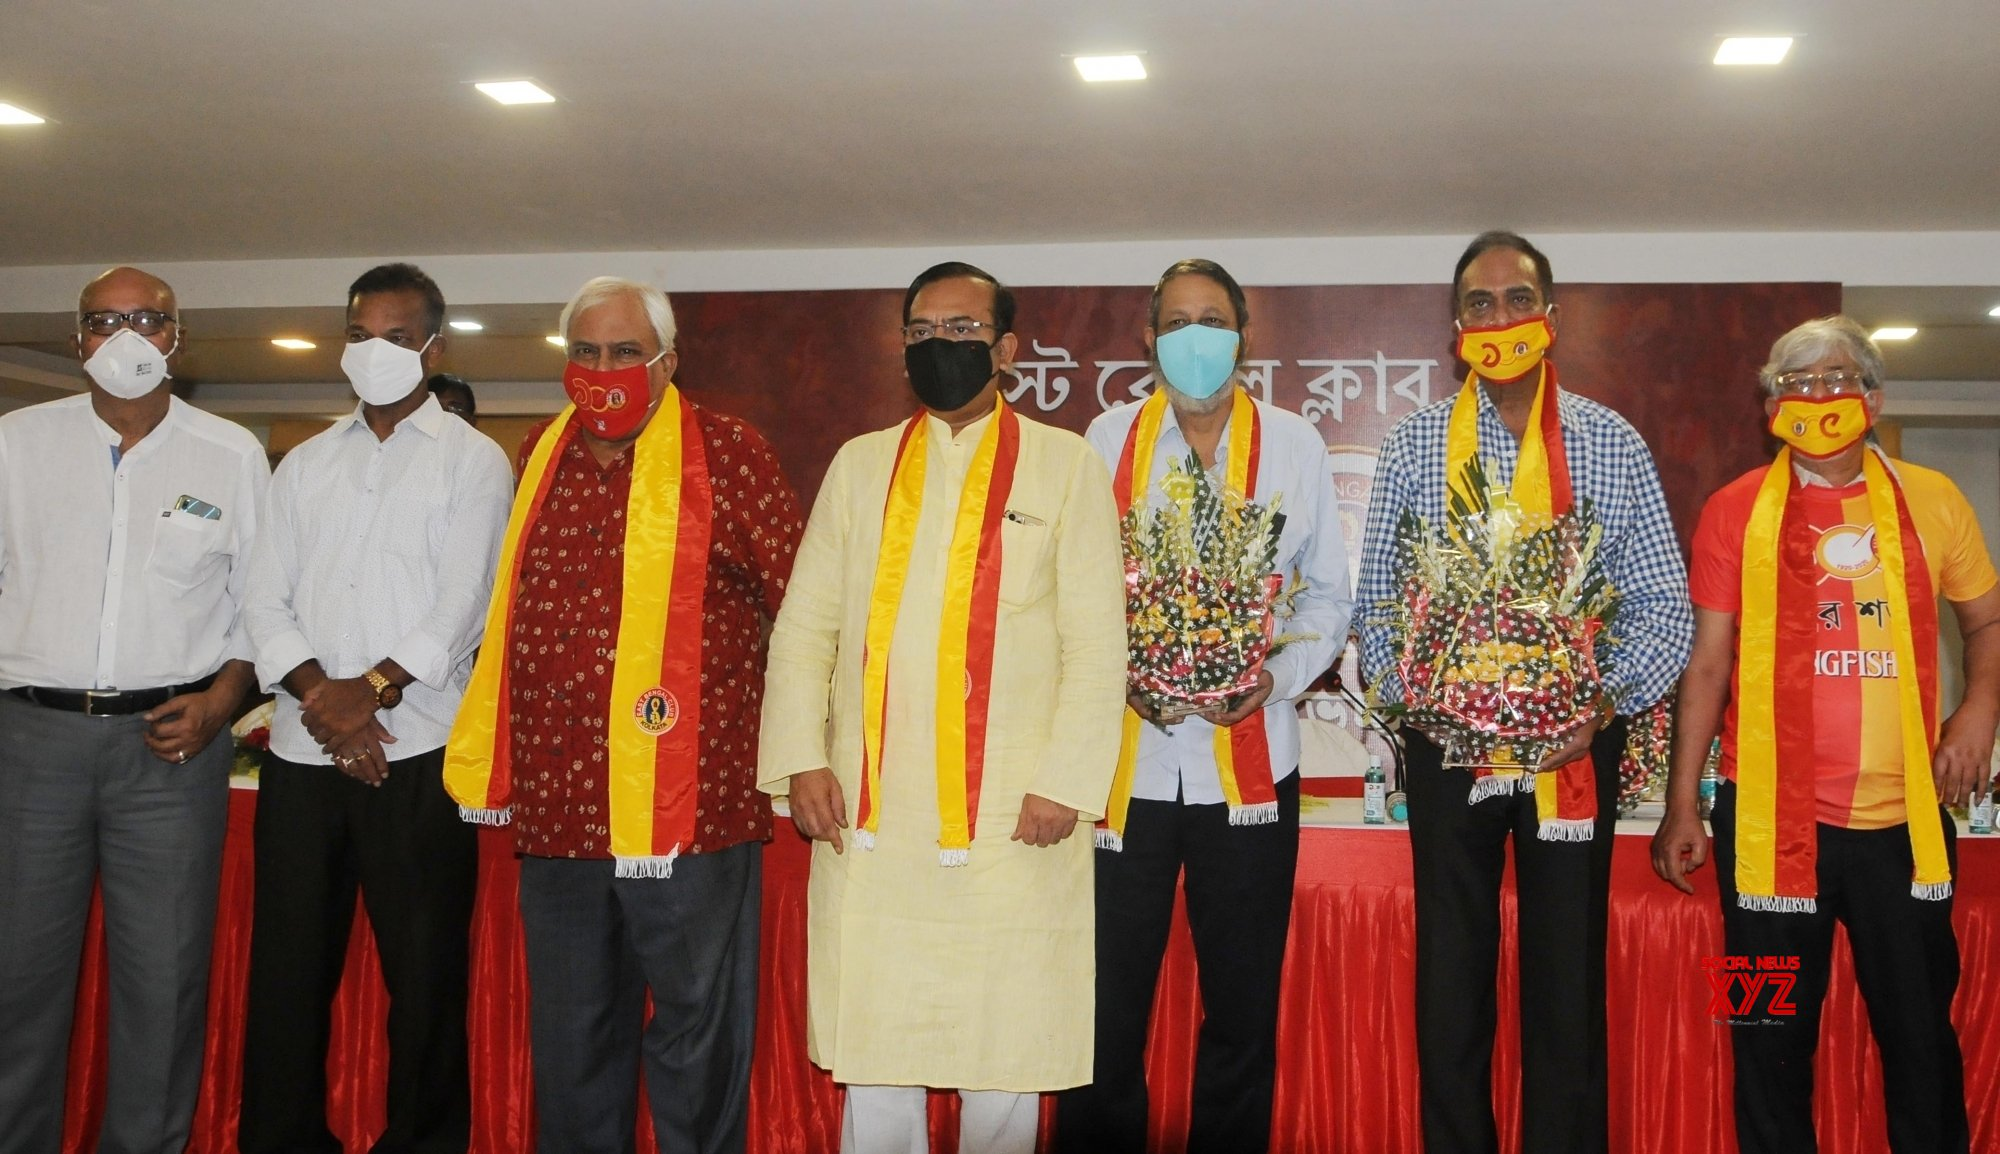 Kolkata: Centenary celebrations of the foundation day of East Bengal Club #Gallery